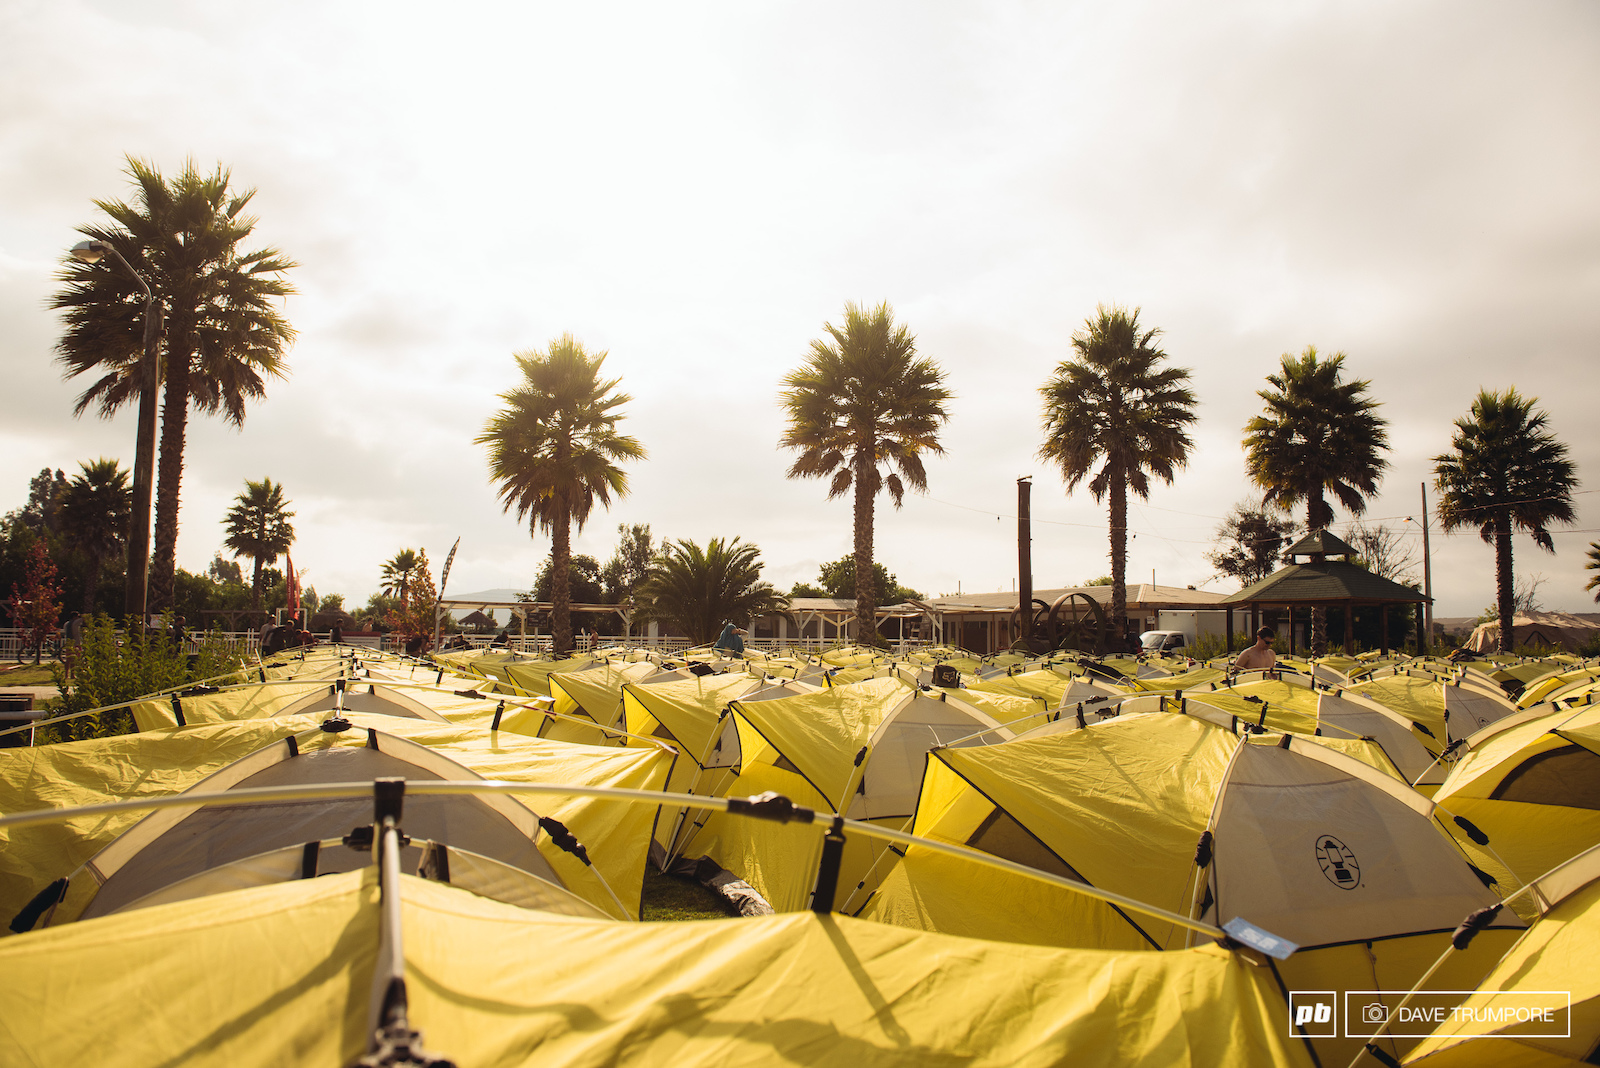 The camp on day 4 was nothing short of luxurious after the rural campgrounds of the Andes.